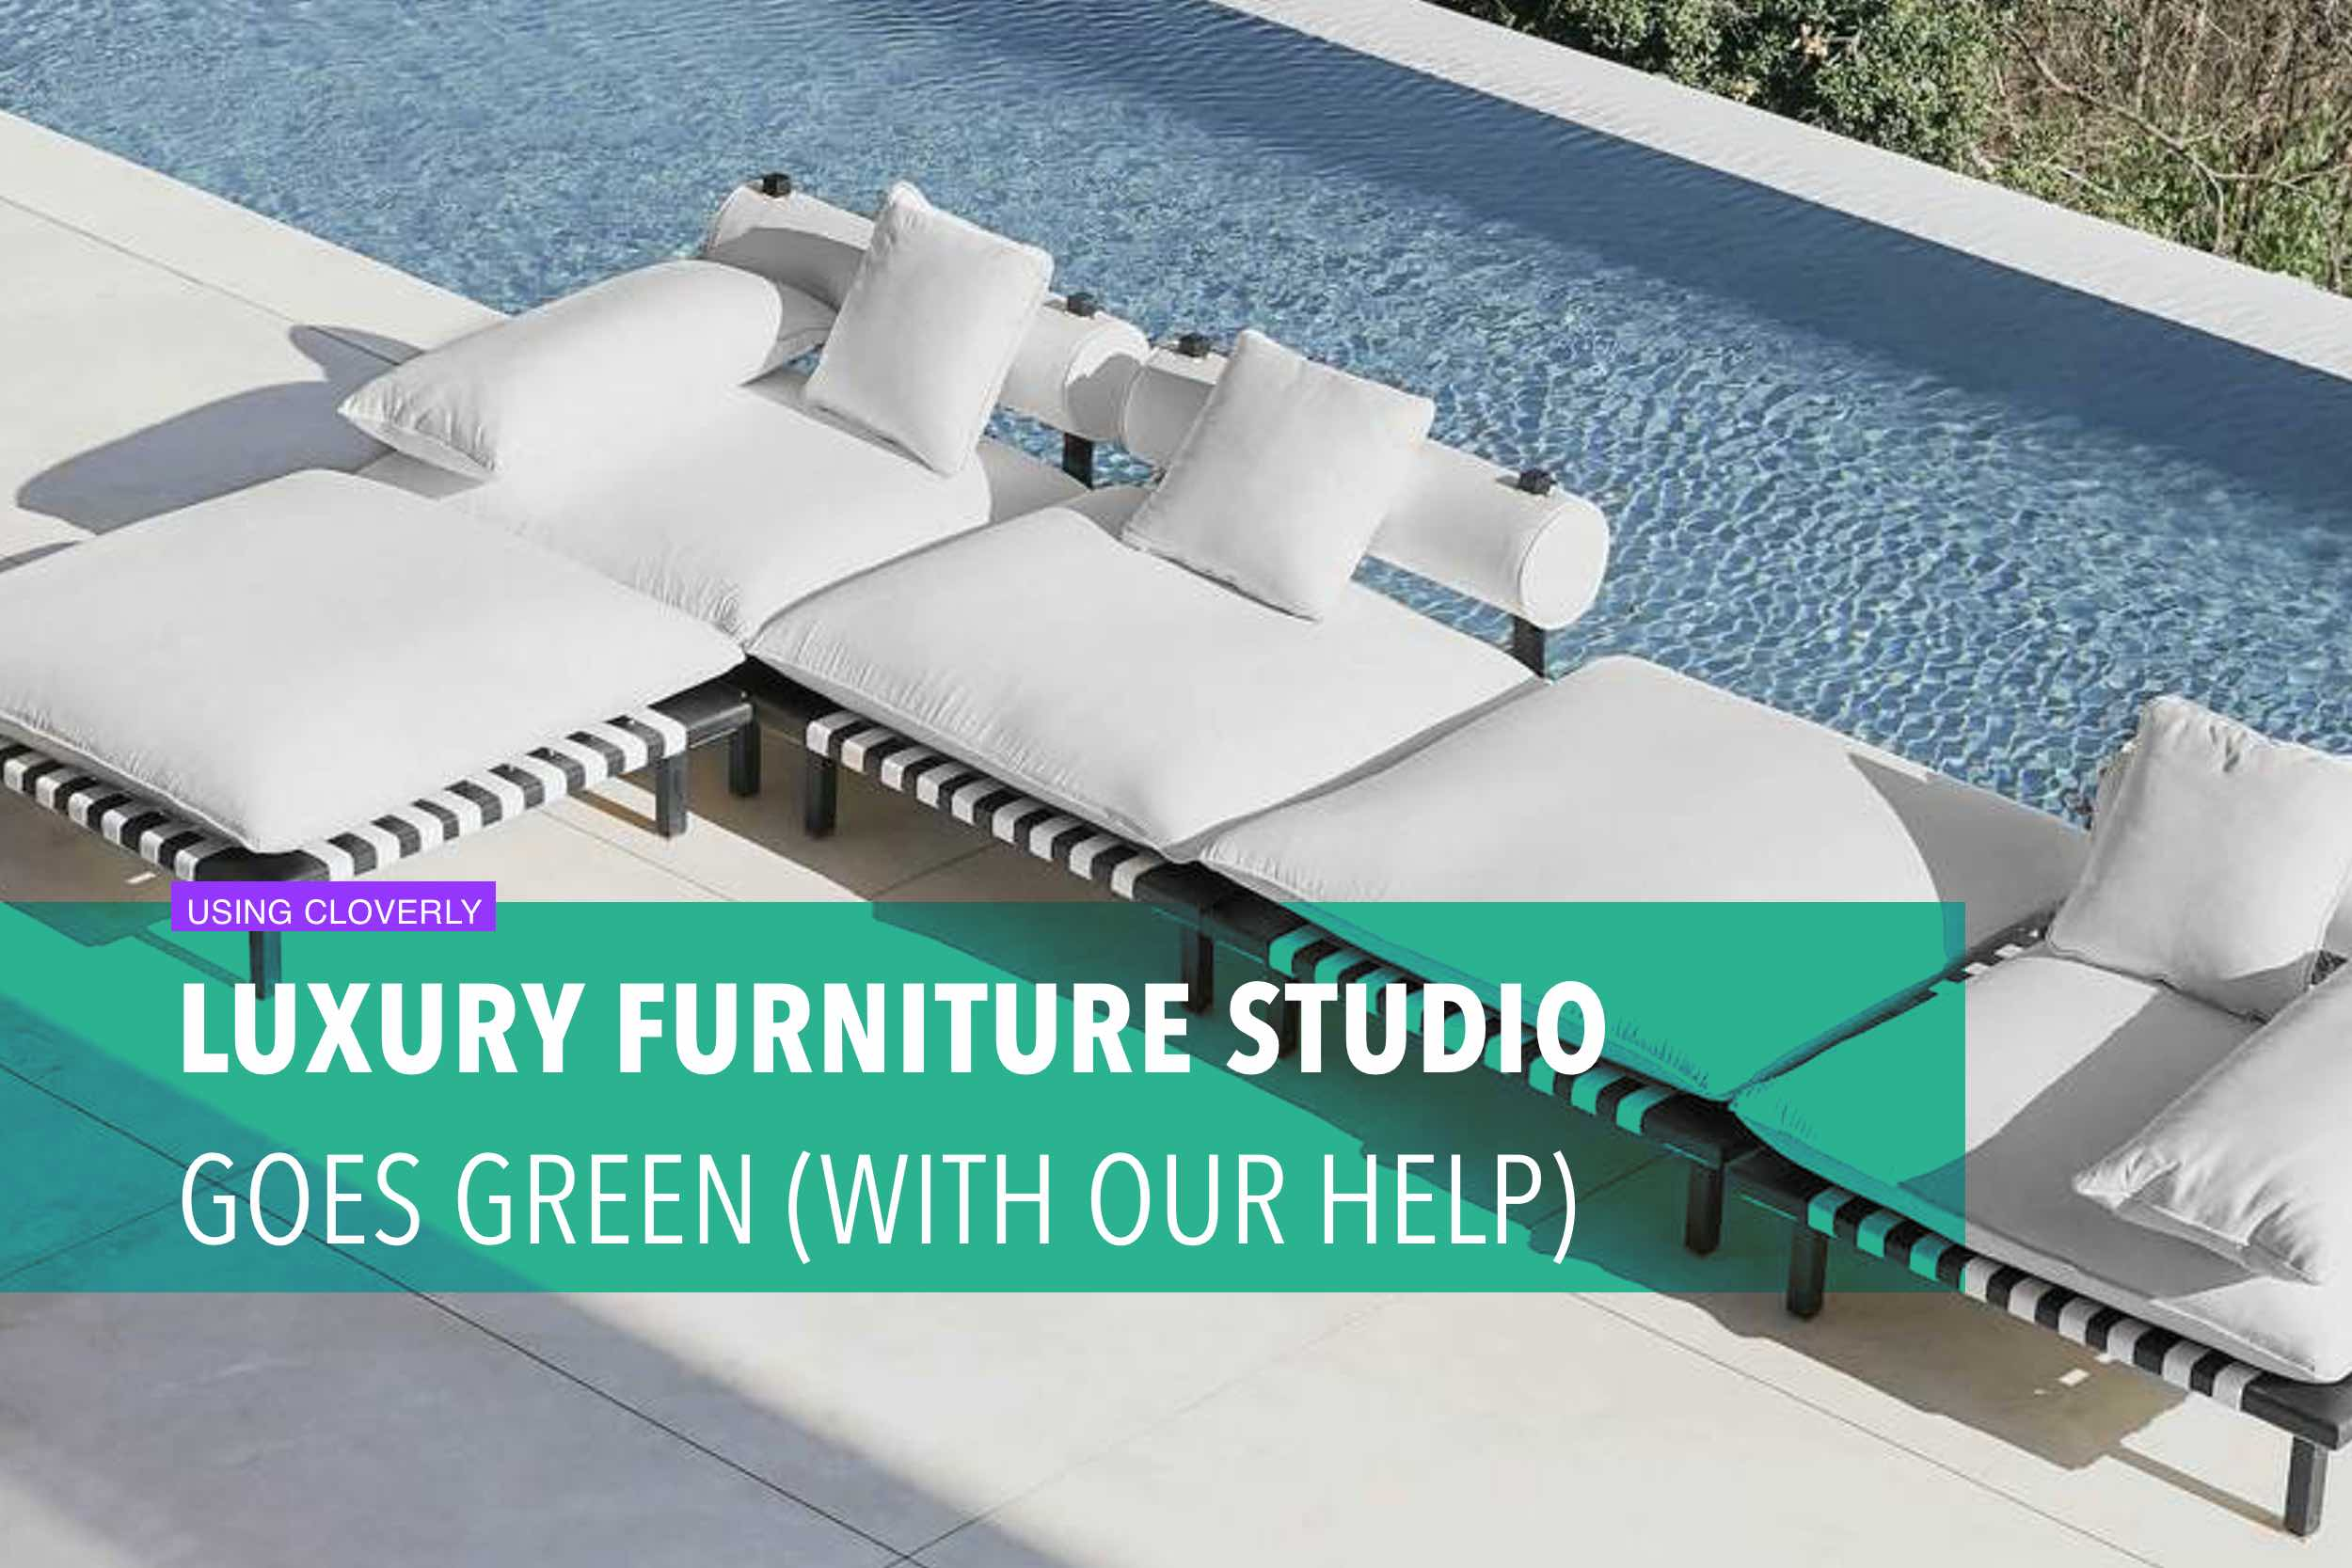 Luxury furniture studio goes green (with our help)